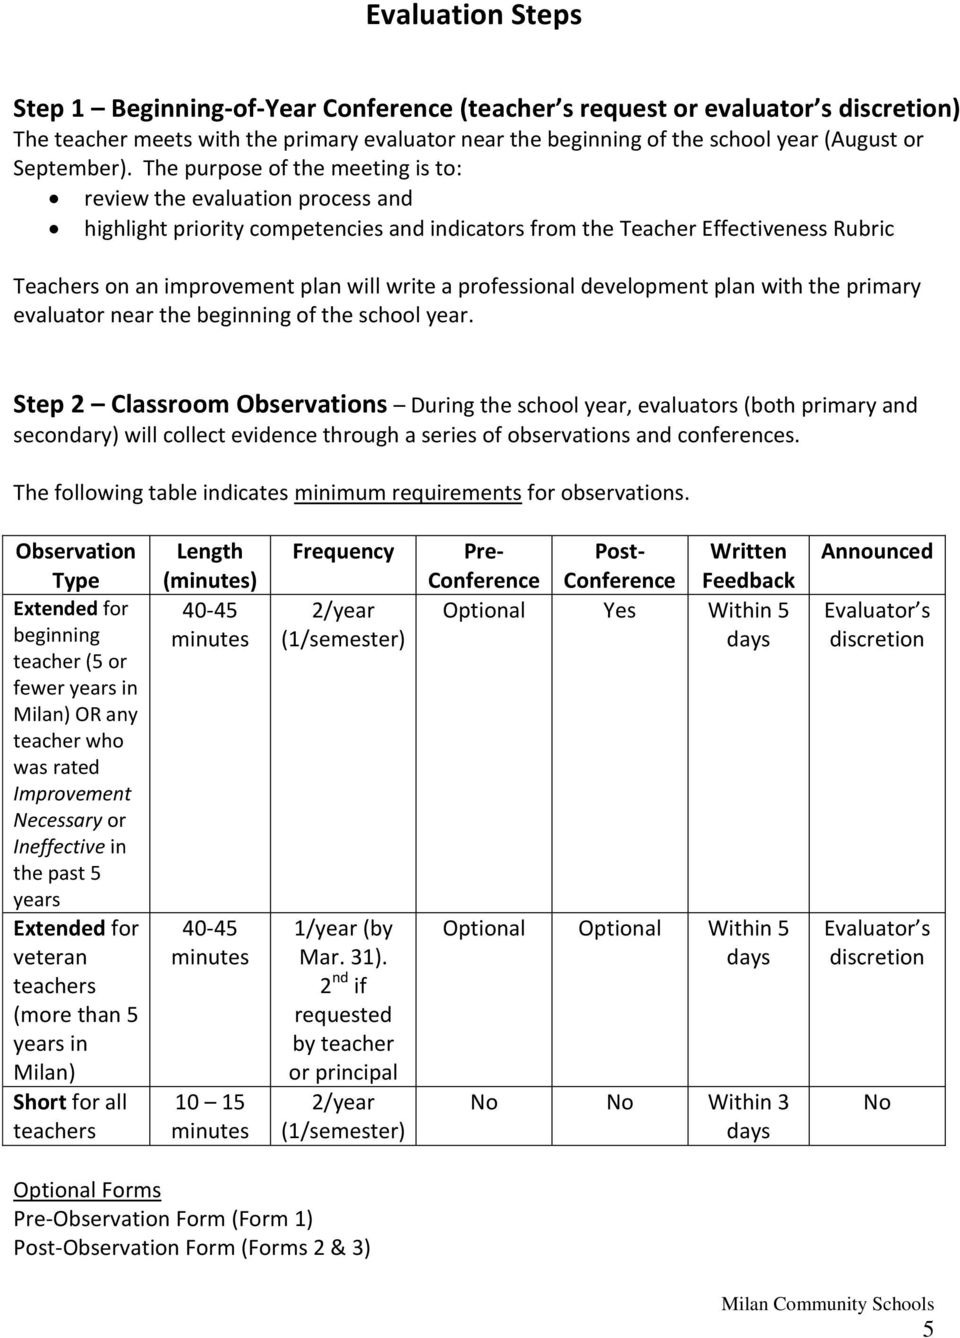 The purpose of the meeting is to: review the evaluation process and highlight priority competencies and indicators from the Teacher Effectiveness Rubric Teachers on an improvement plan will write a